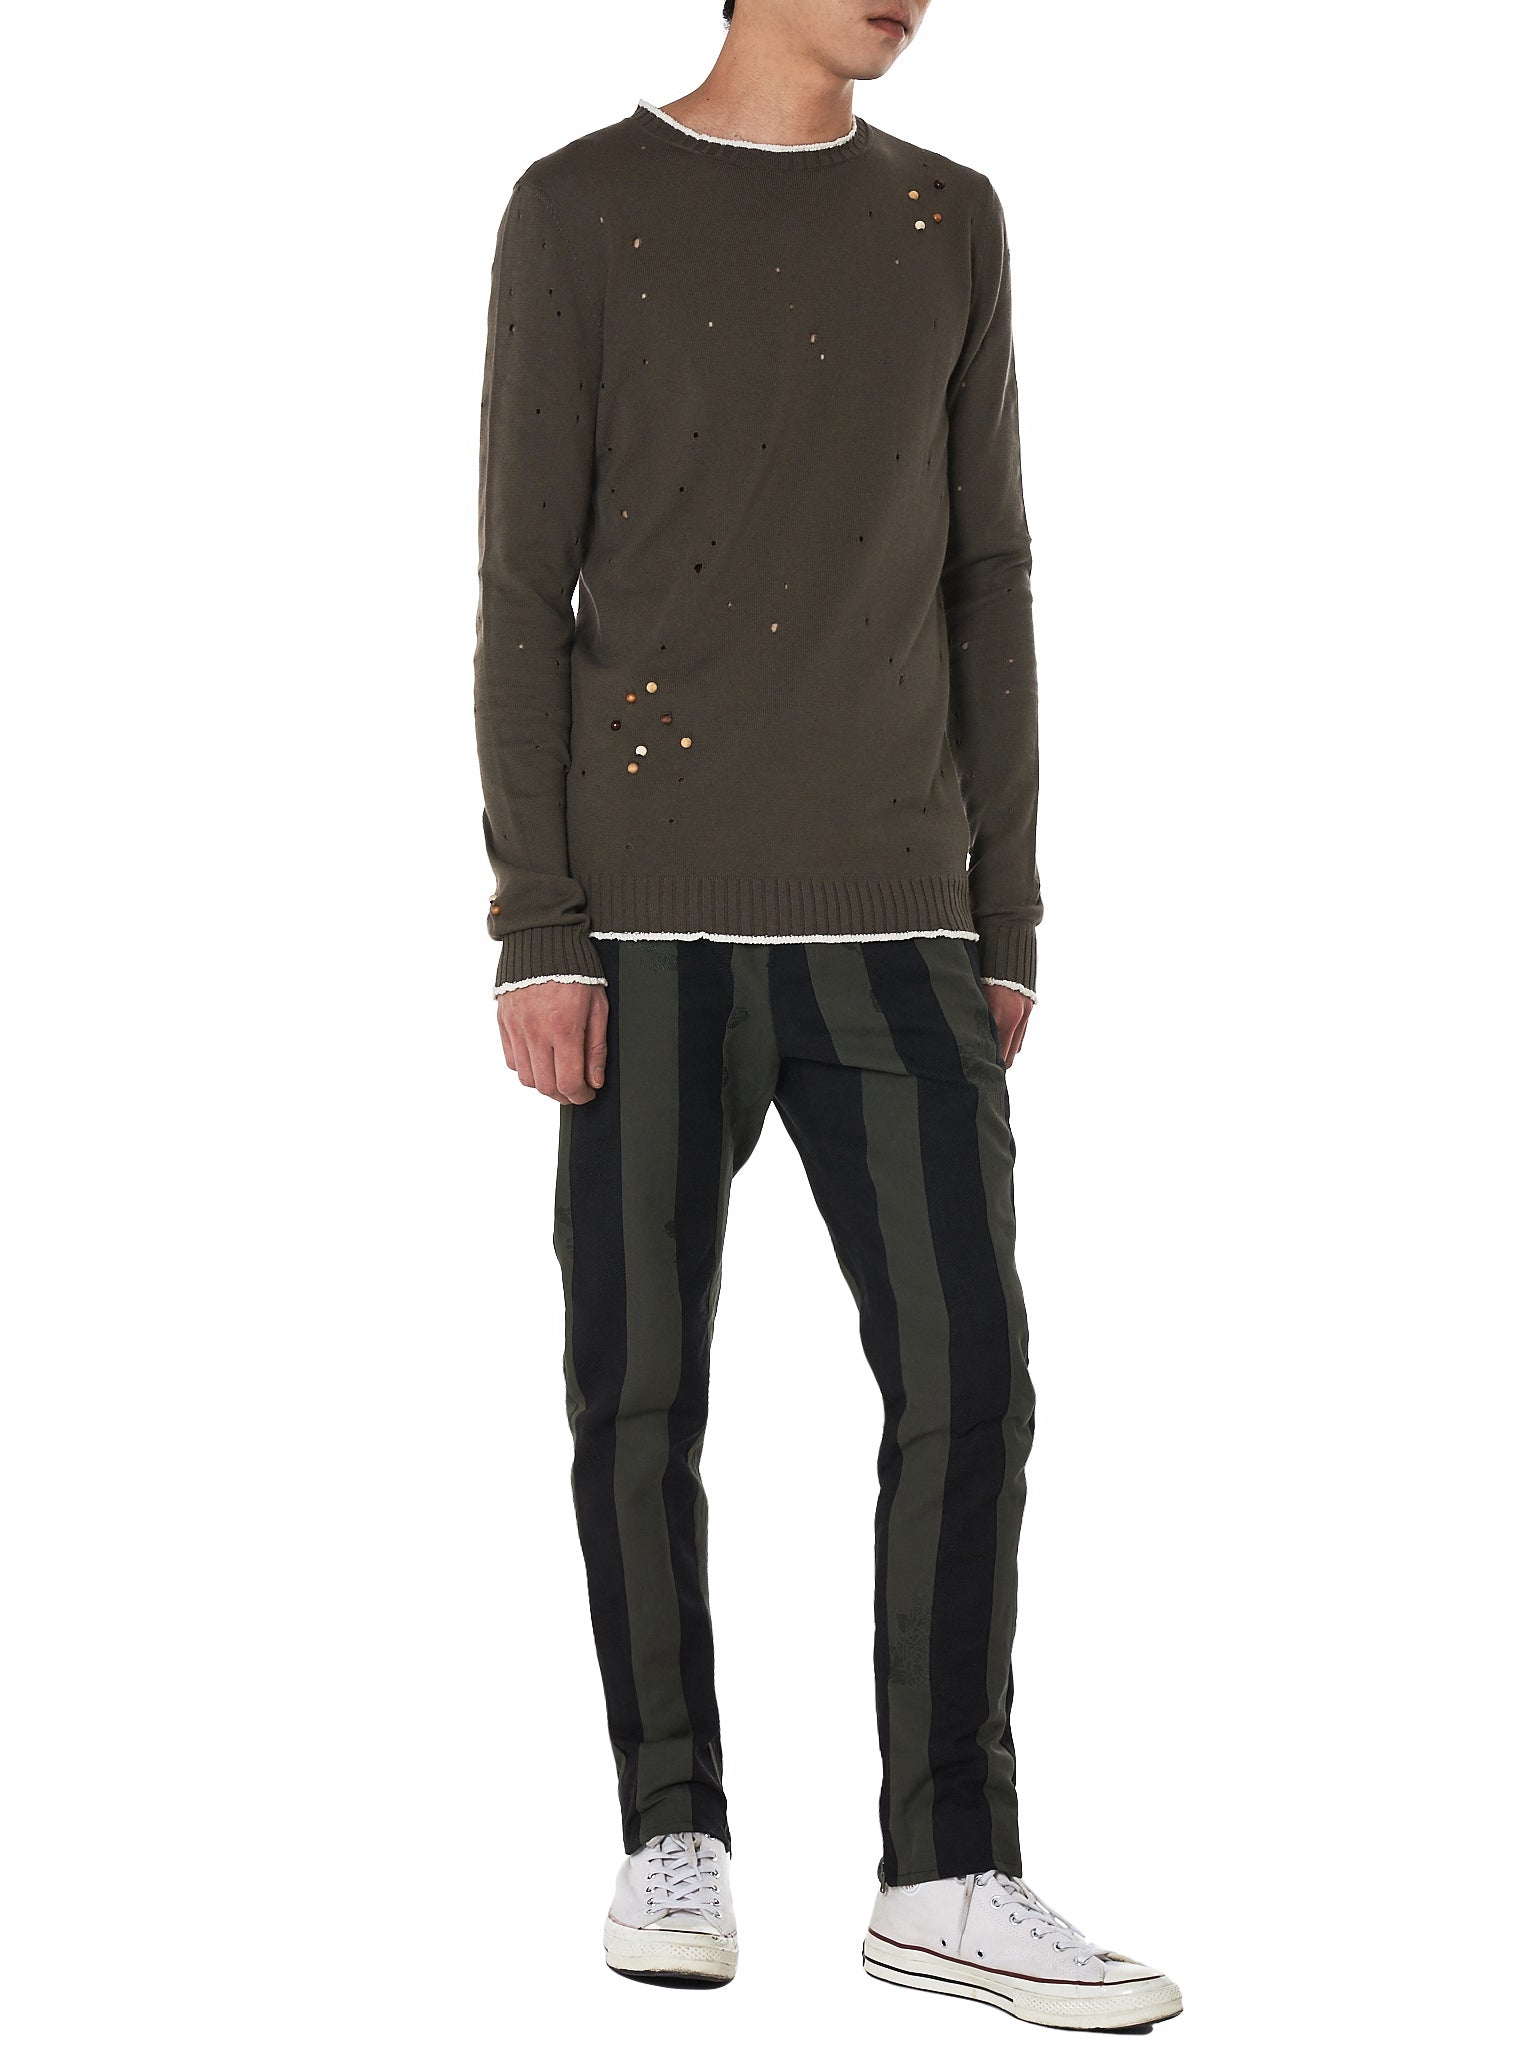 damir doma striped trouser - H.Lorenzo styled